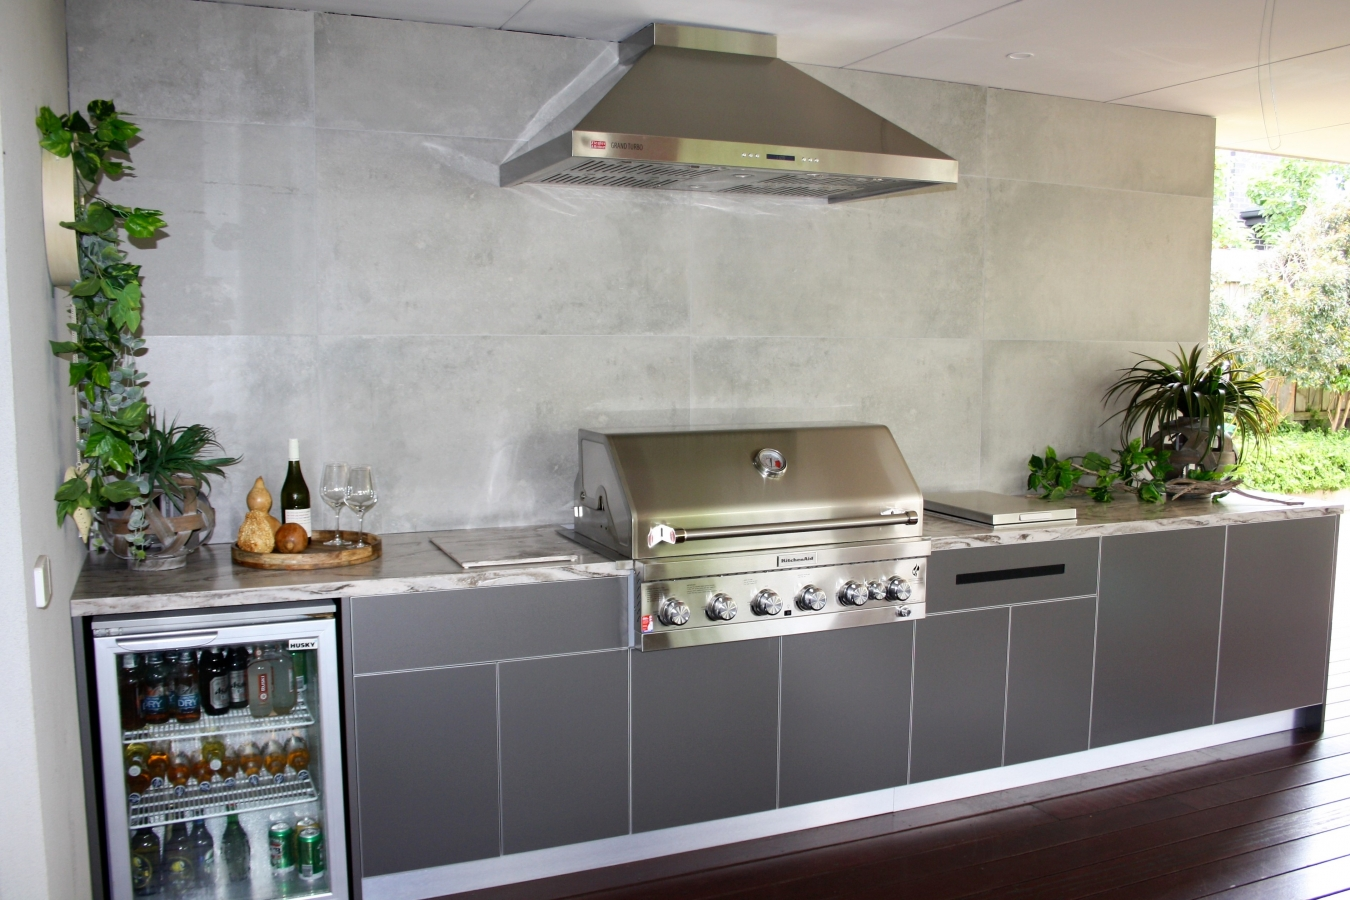 KitchenAid-6-Burner-BBQ-Metallic-Charcoal-Corian-Somkedrift-Prima-Alfresco-Kitchen